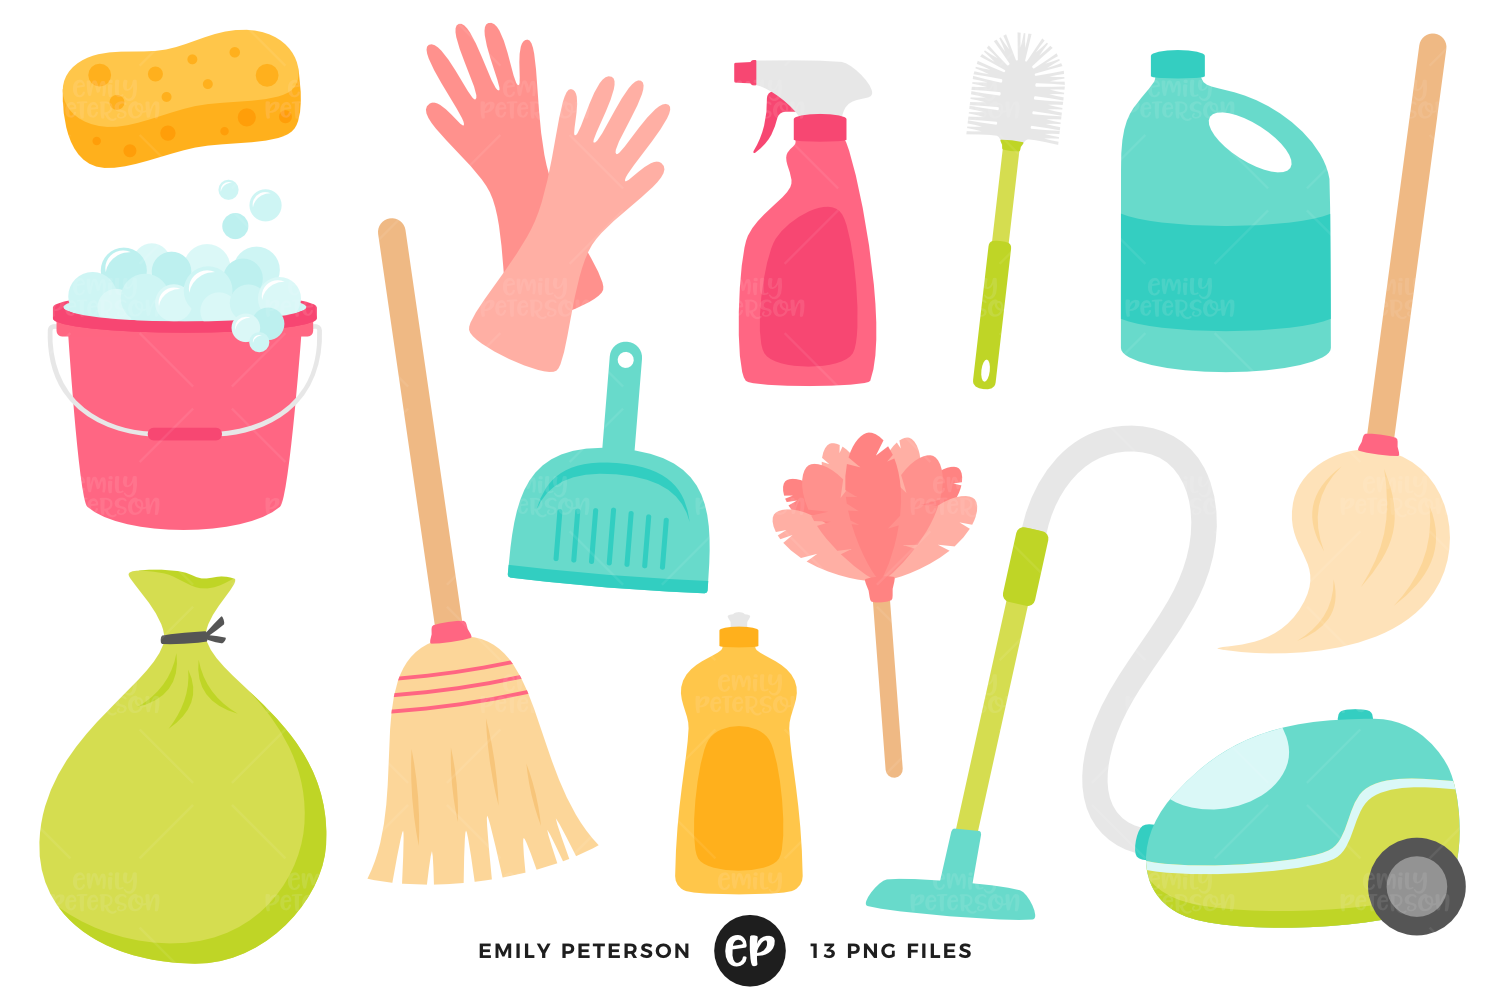 Spring Cleaning Clipart, Emily Peterson